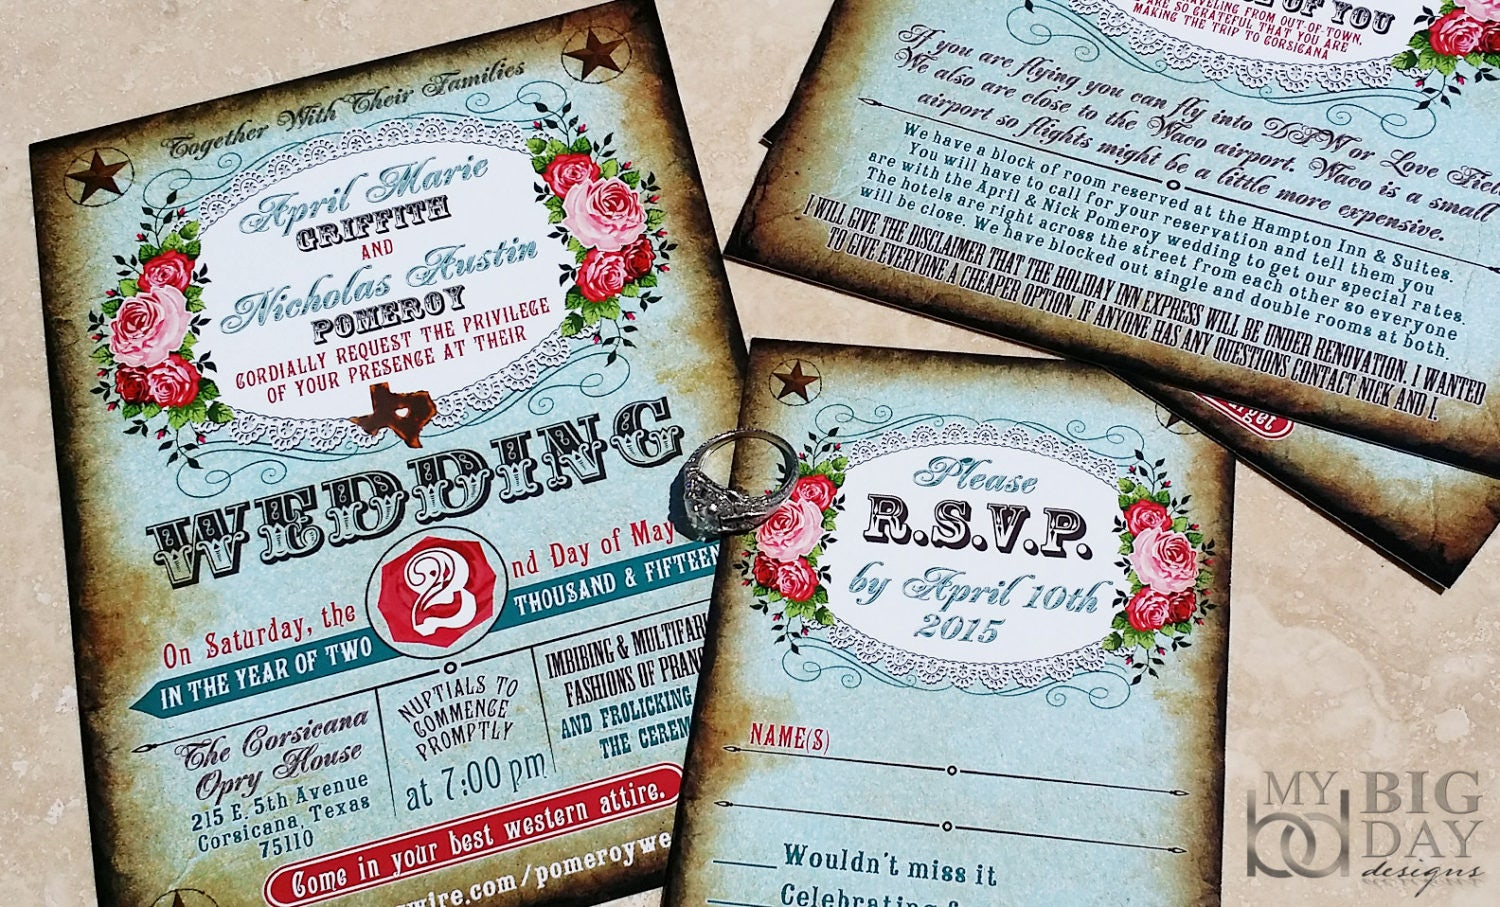 Boots Wedding Invitations: Boots And Bling Western Wedding Invitation Set. Western